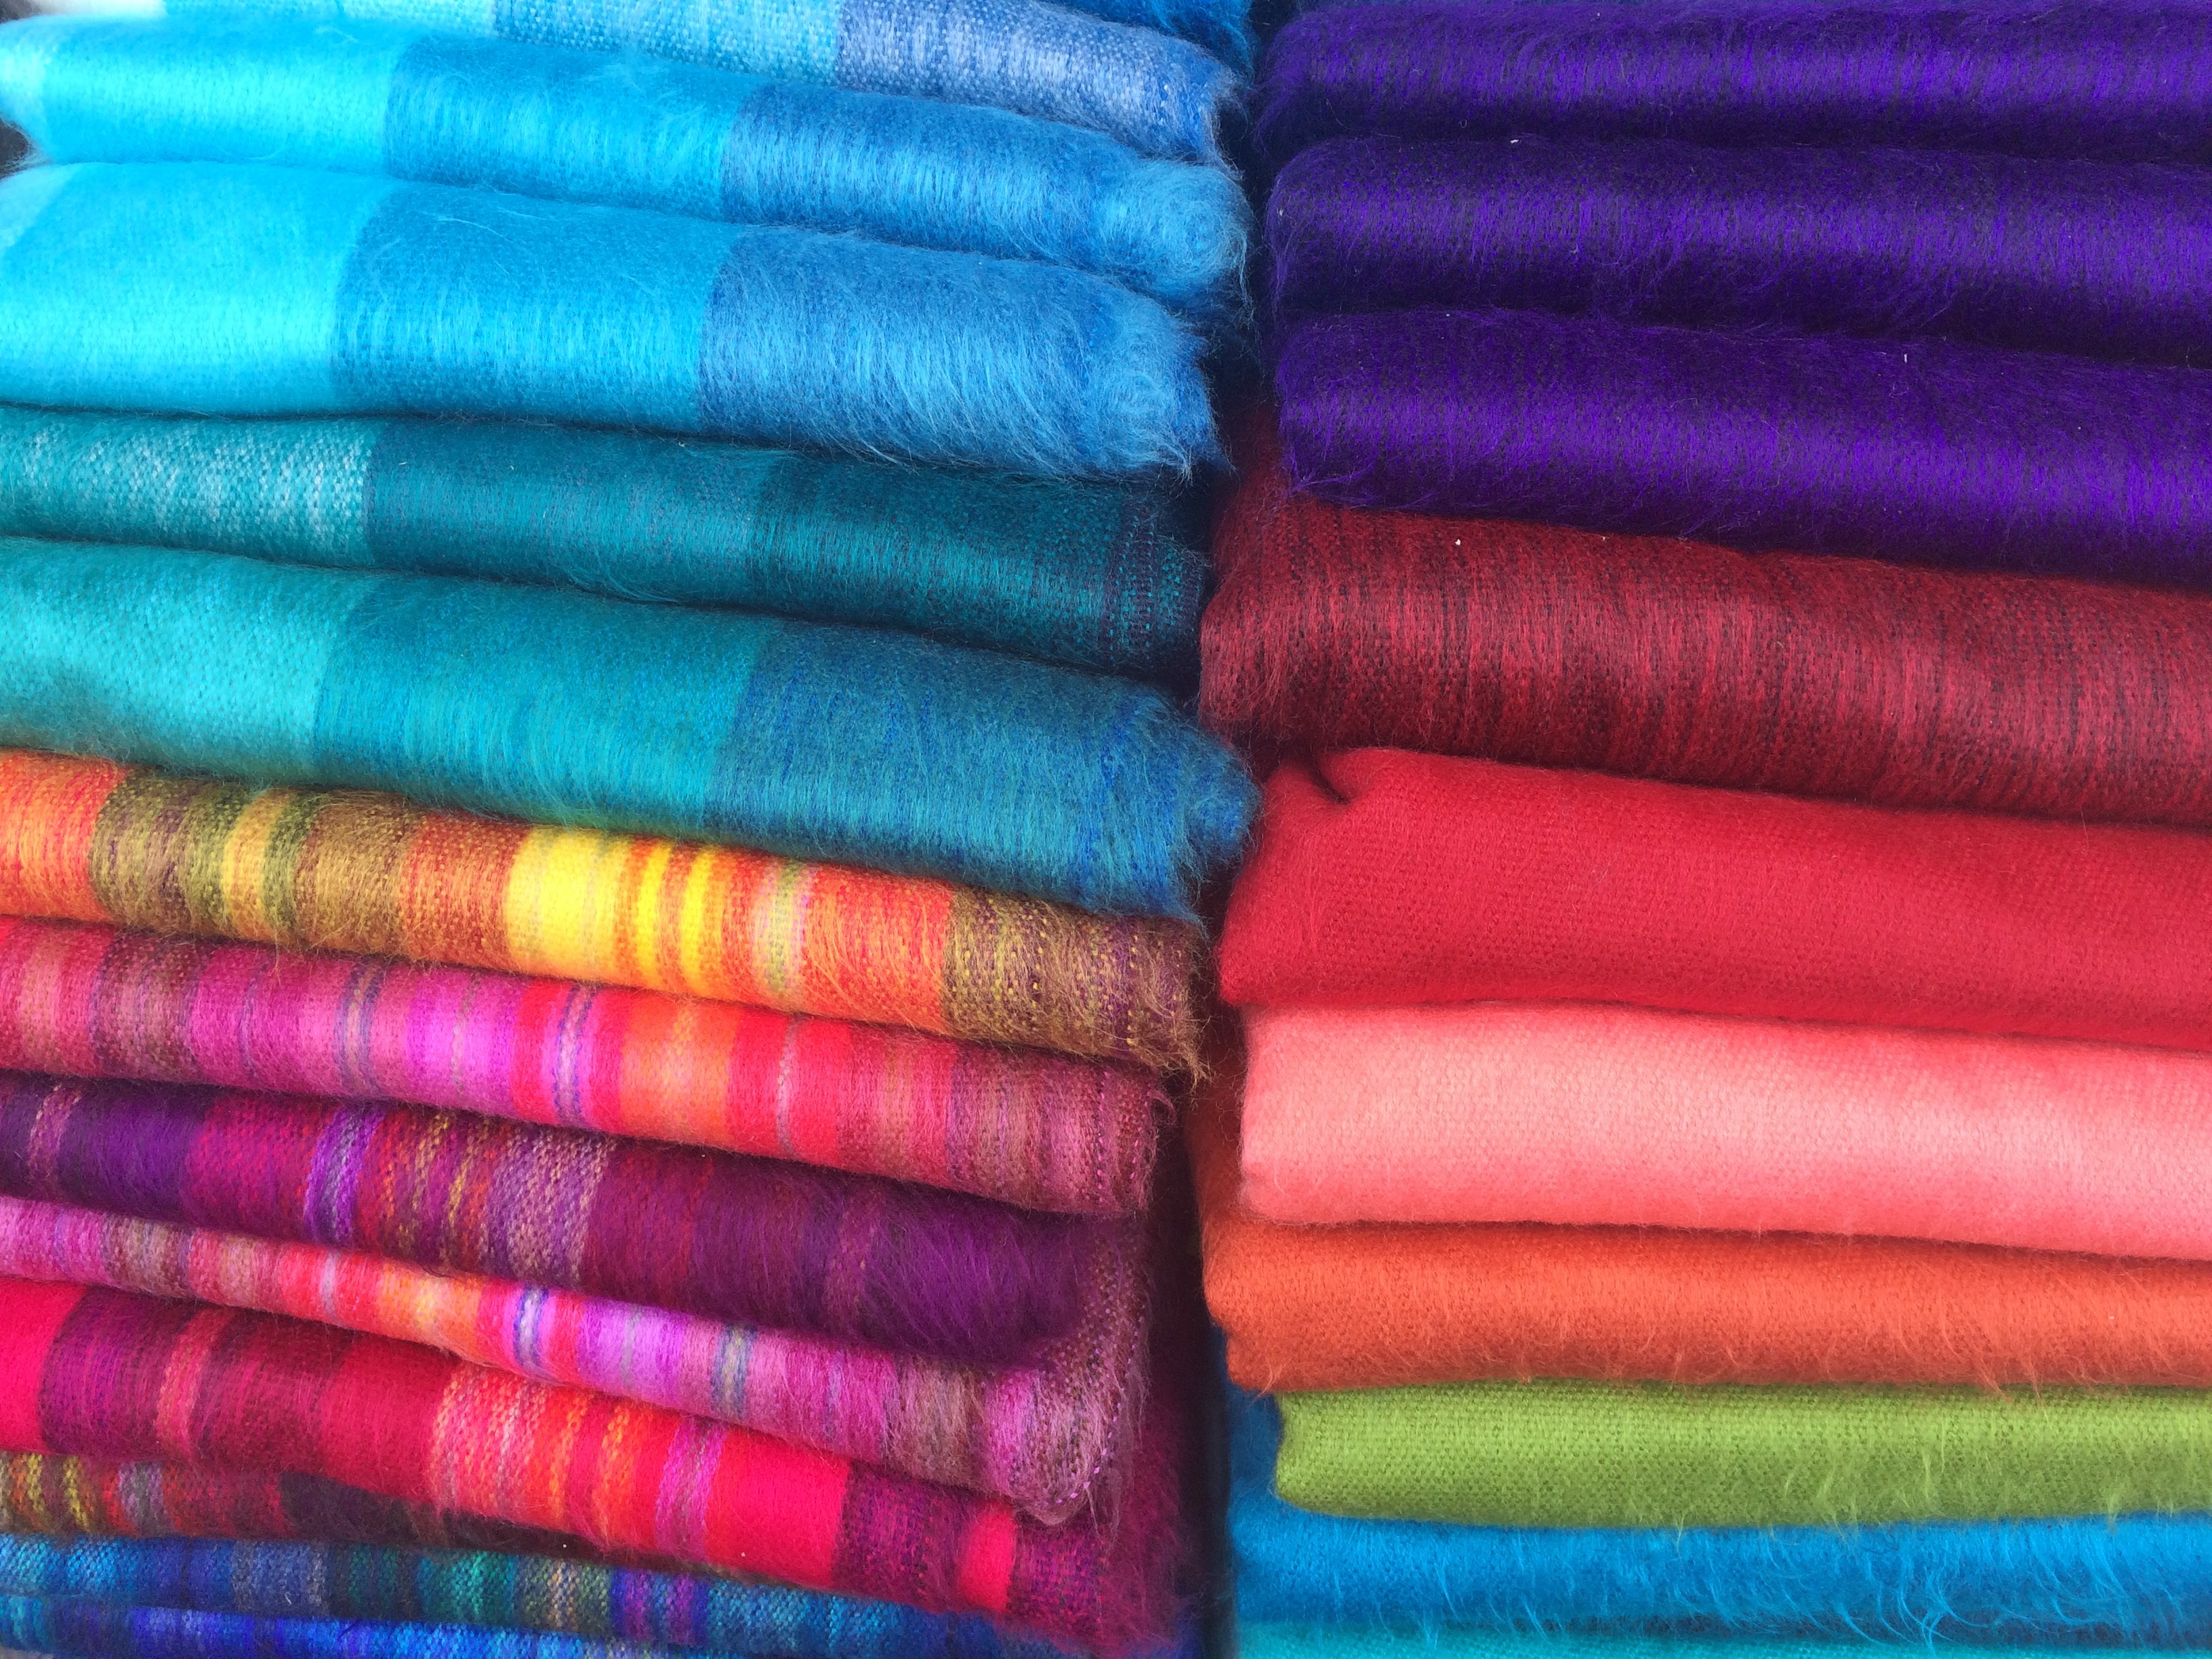 "Otavalo-Scarves ""Panama"" Hats and Hot Springs: Two Day/Overnight Trips Out of Quito, Ecuador Ecuador"